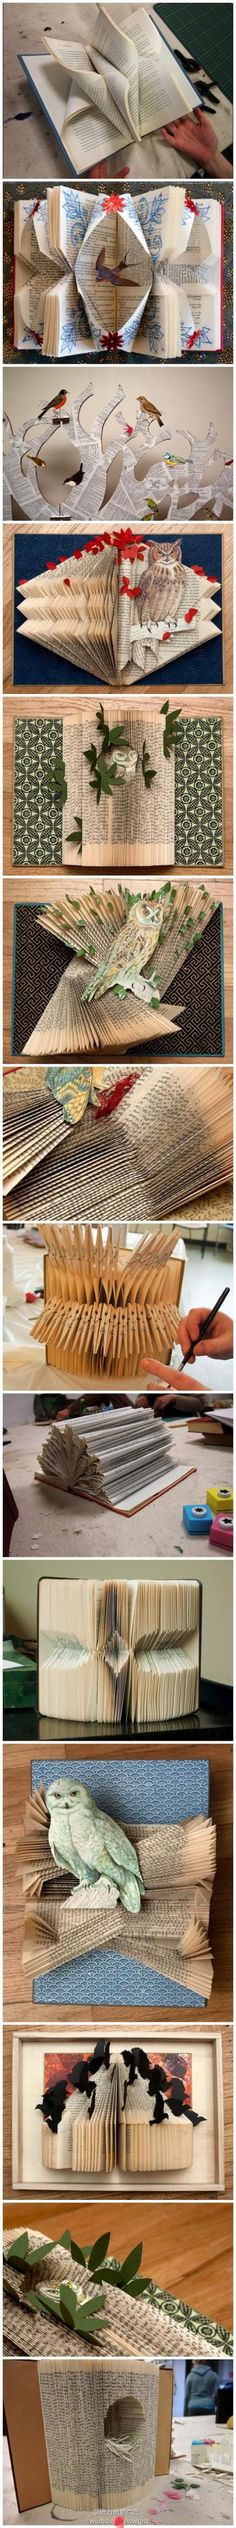 The art of paper folding - From the Chinese site, pengfu.com - can't find a creator to give credit to, but I love the work.